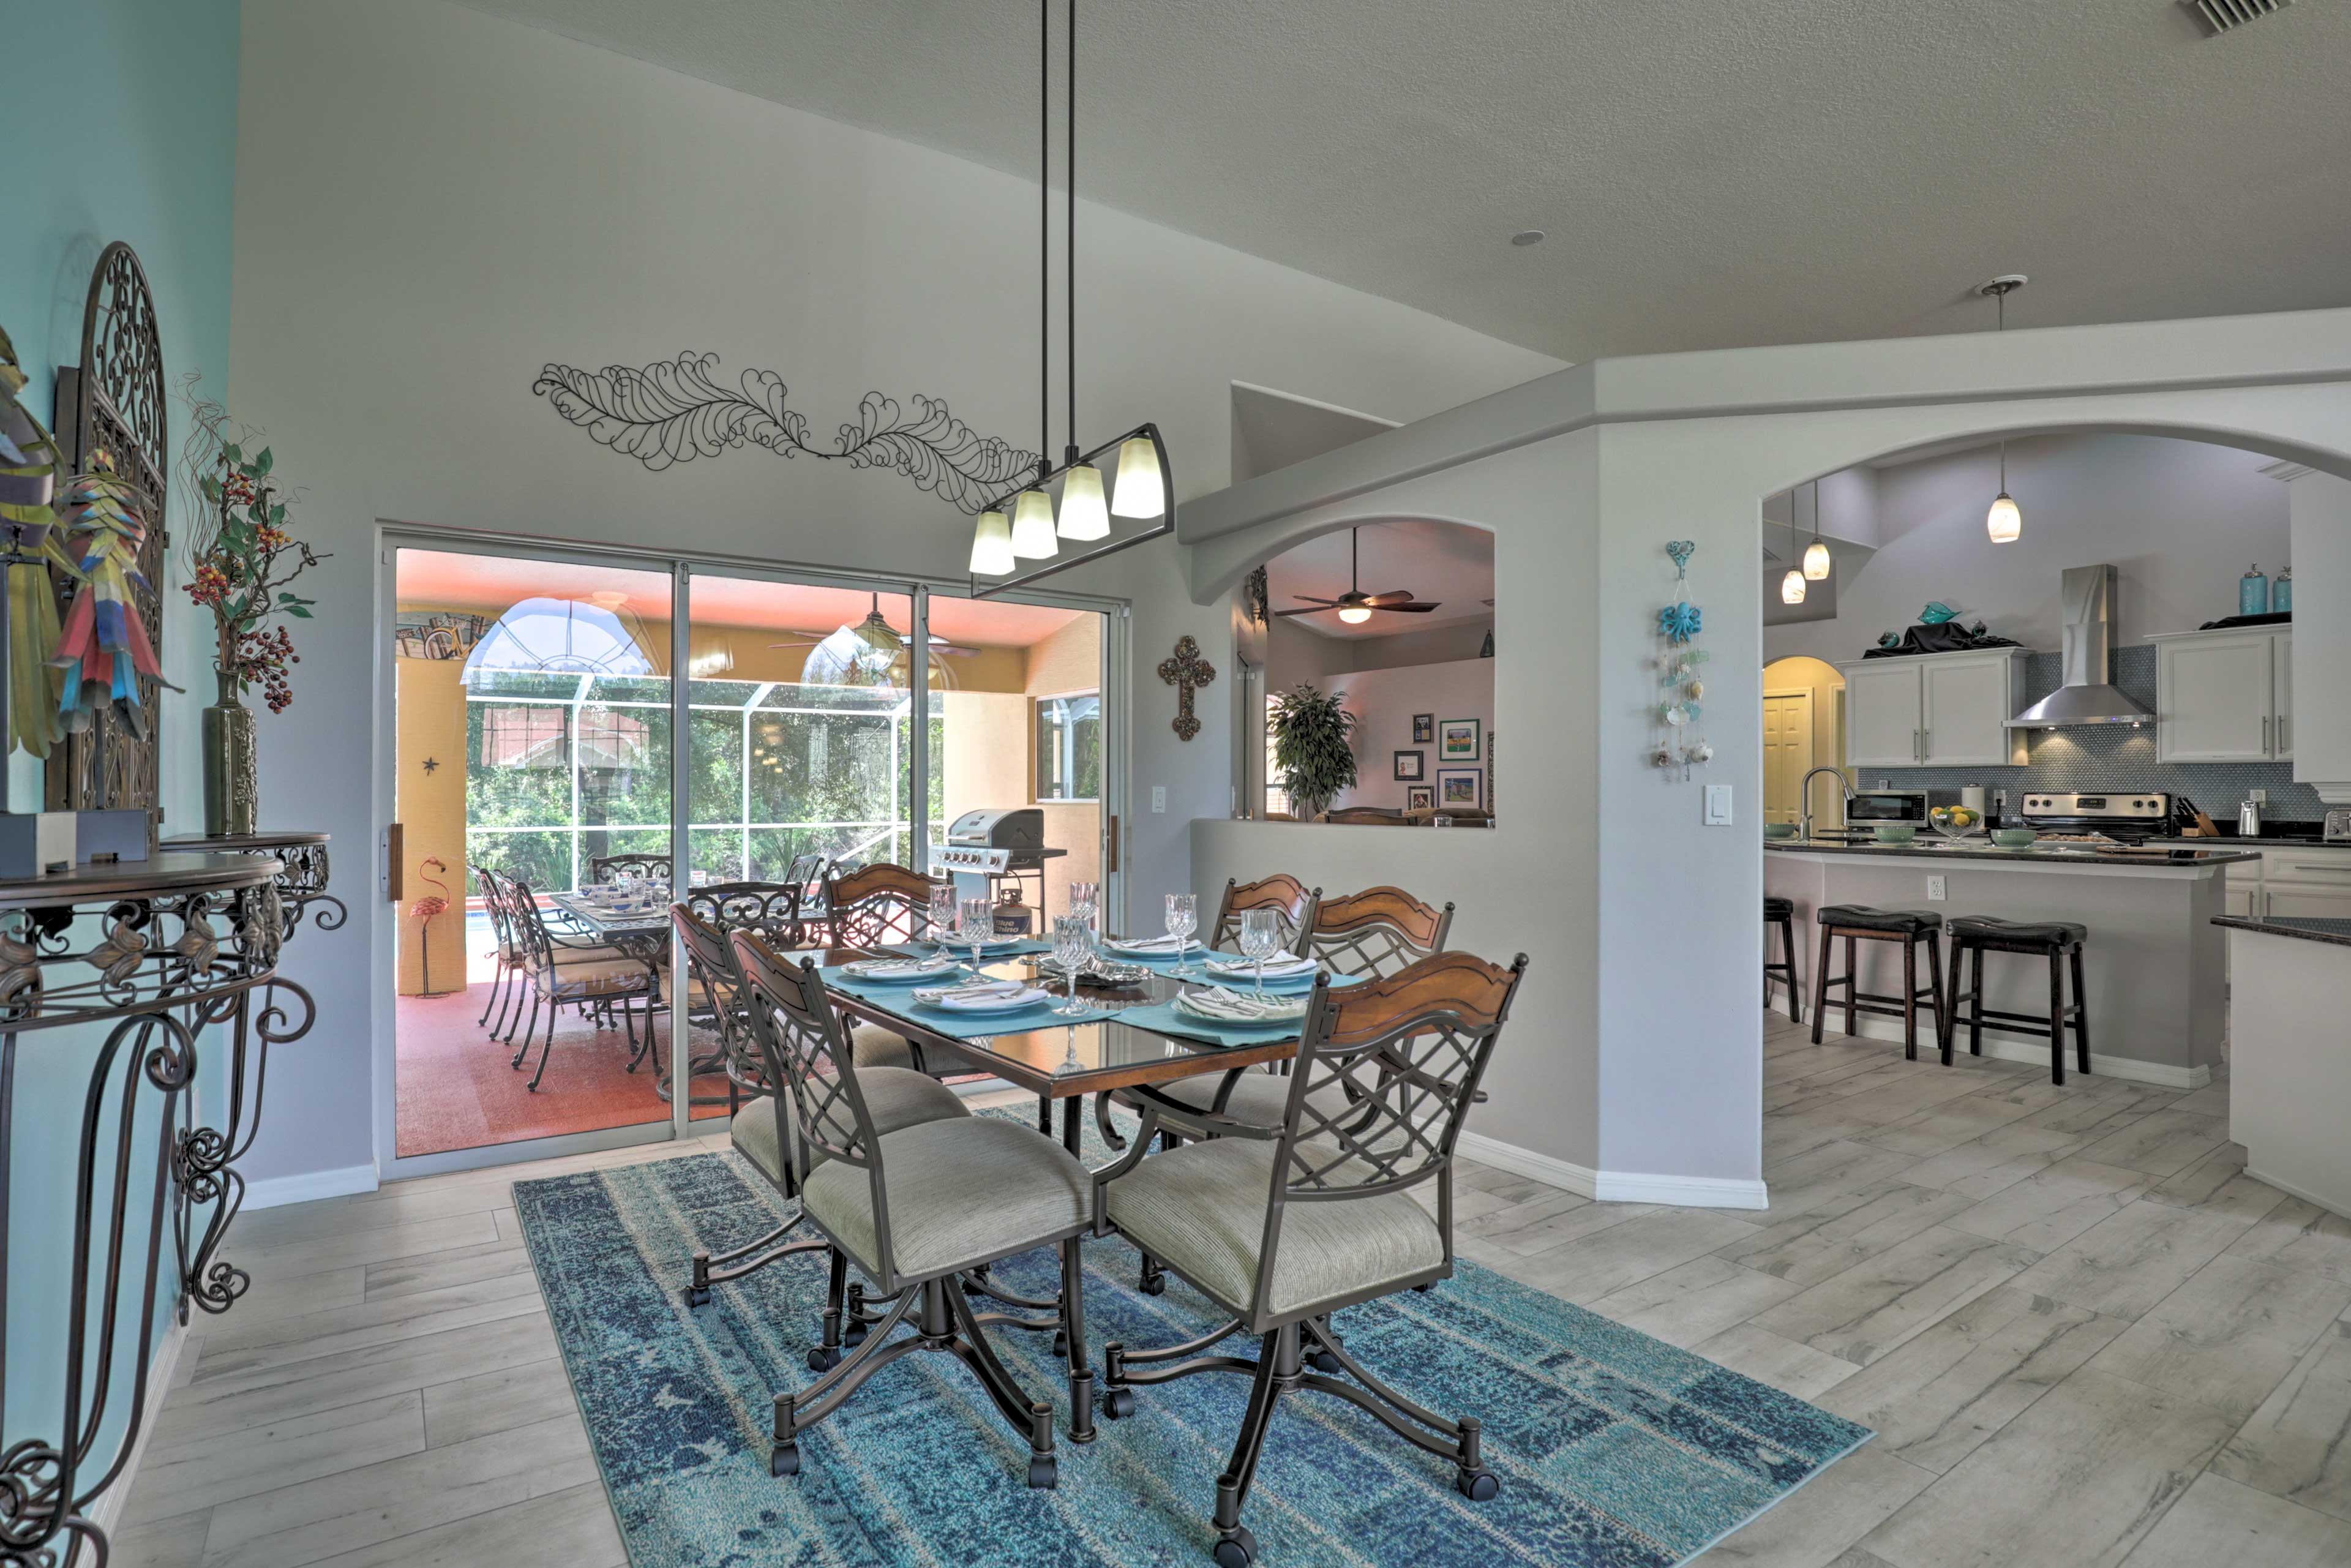 Share a family meal around the formal dining table.